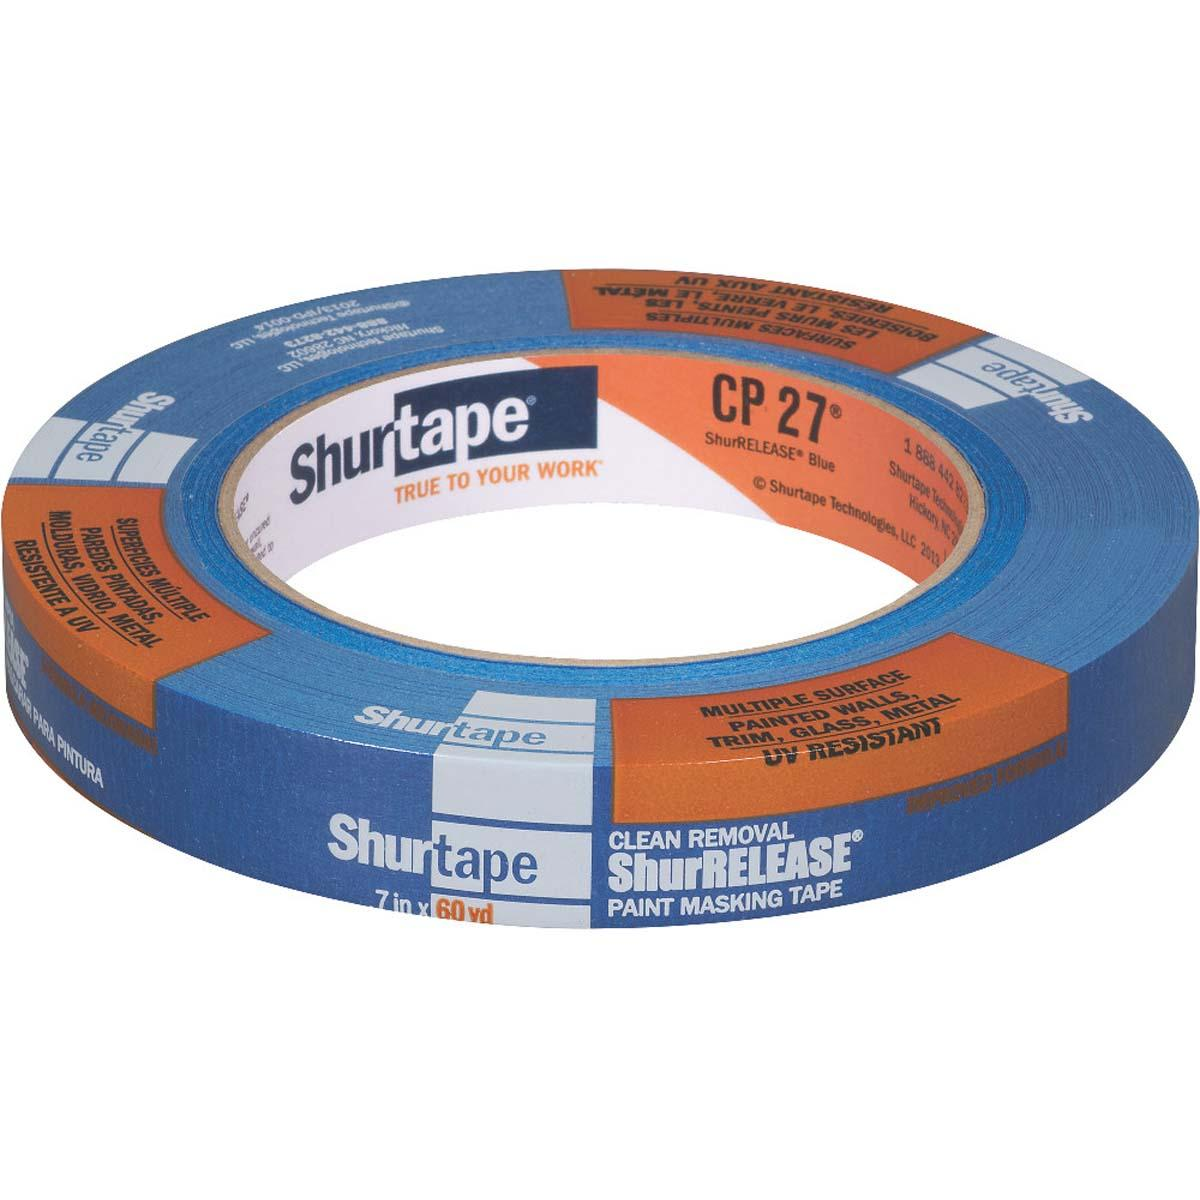 CP 27® 14-Day ShurRELEASE® Painter's Tape - Multi-Surface - BLUE - 18MM x 55M